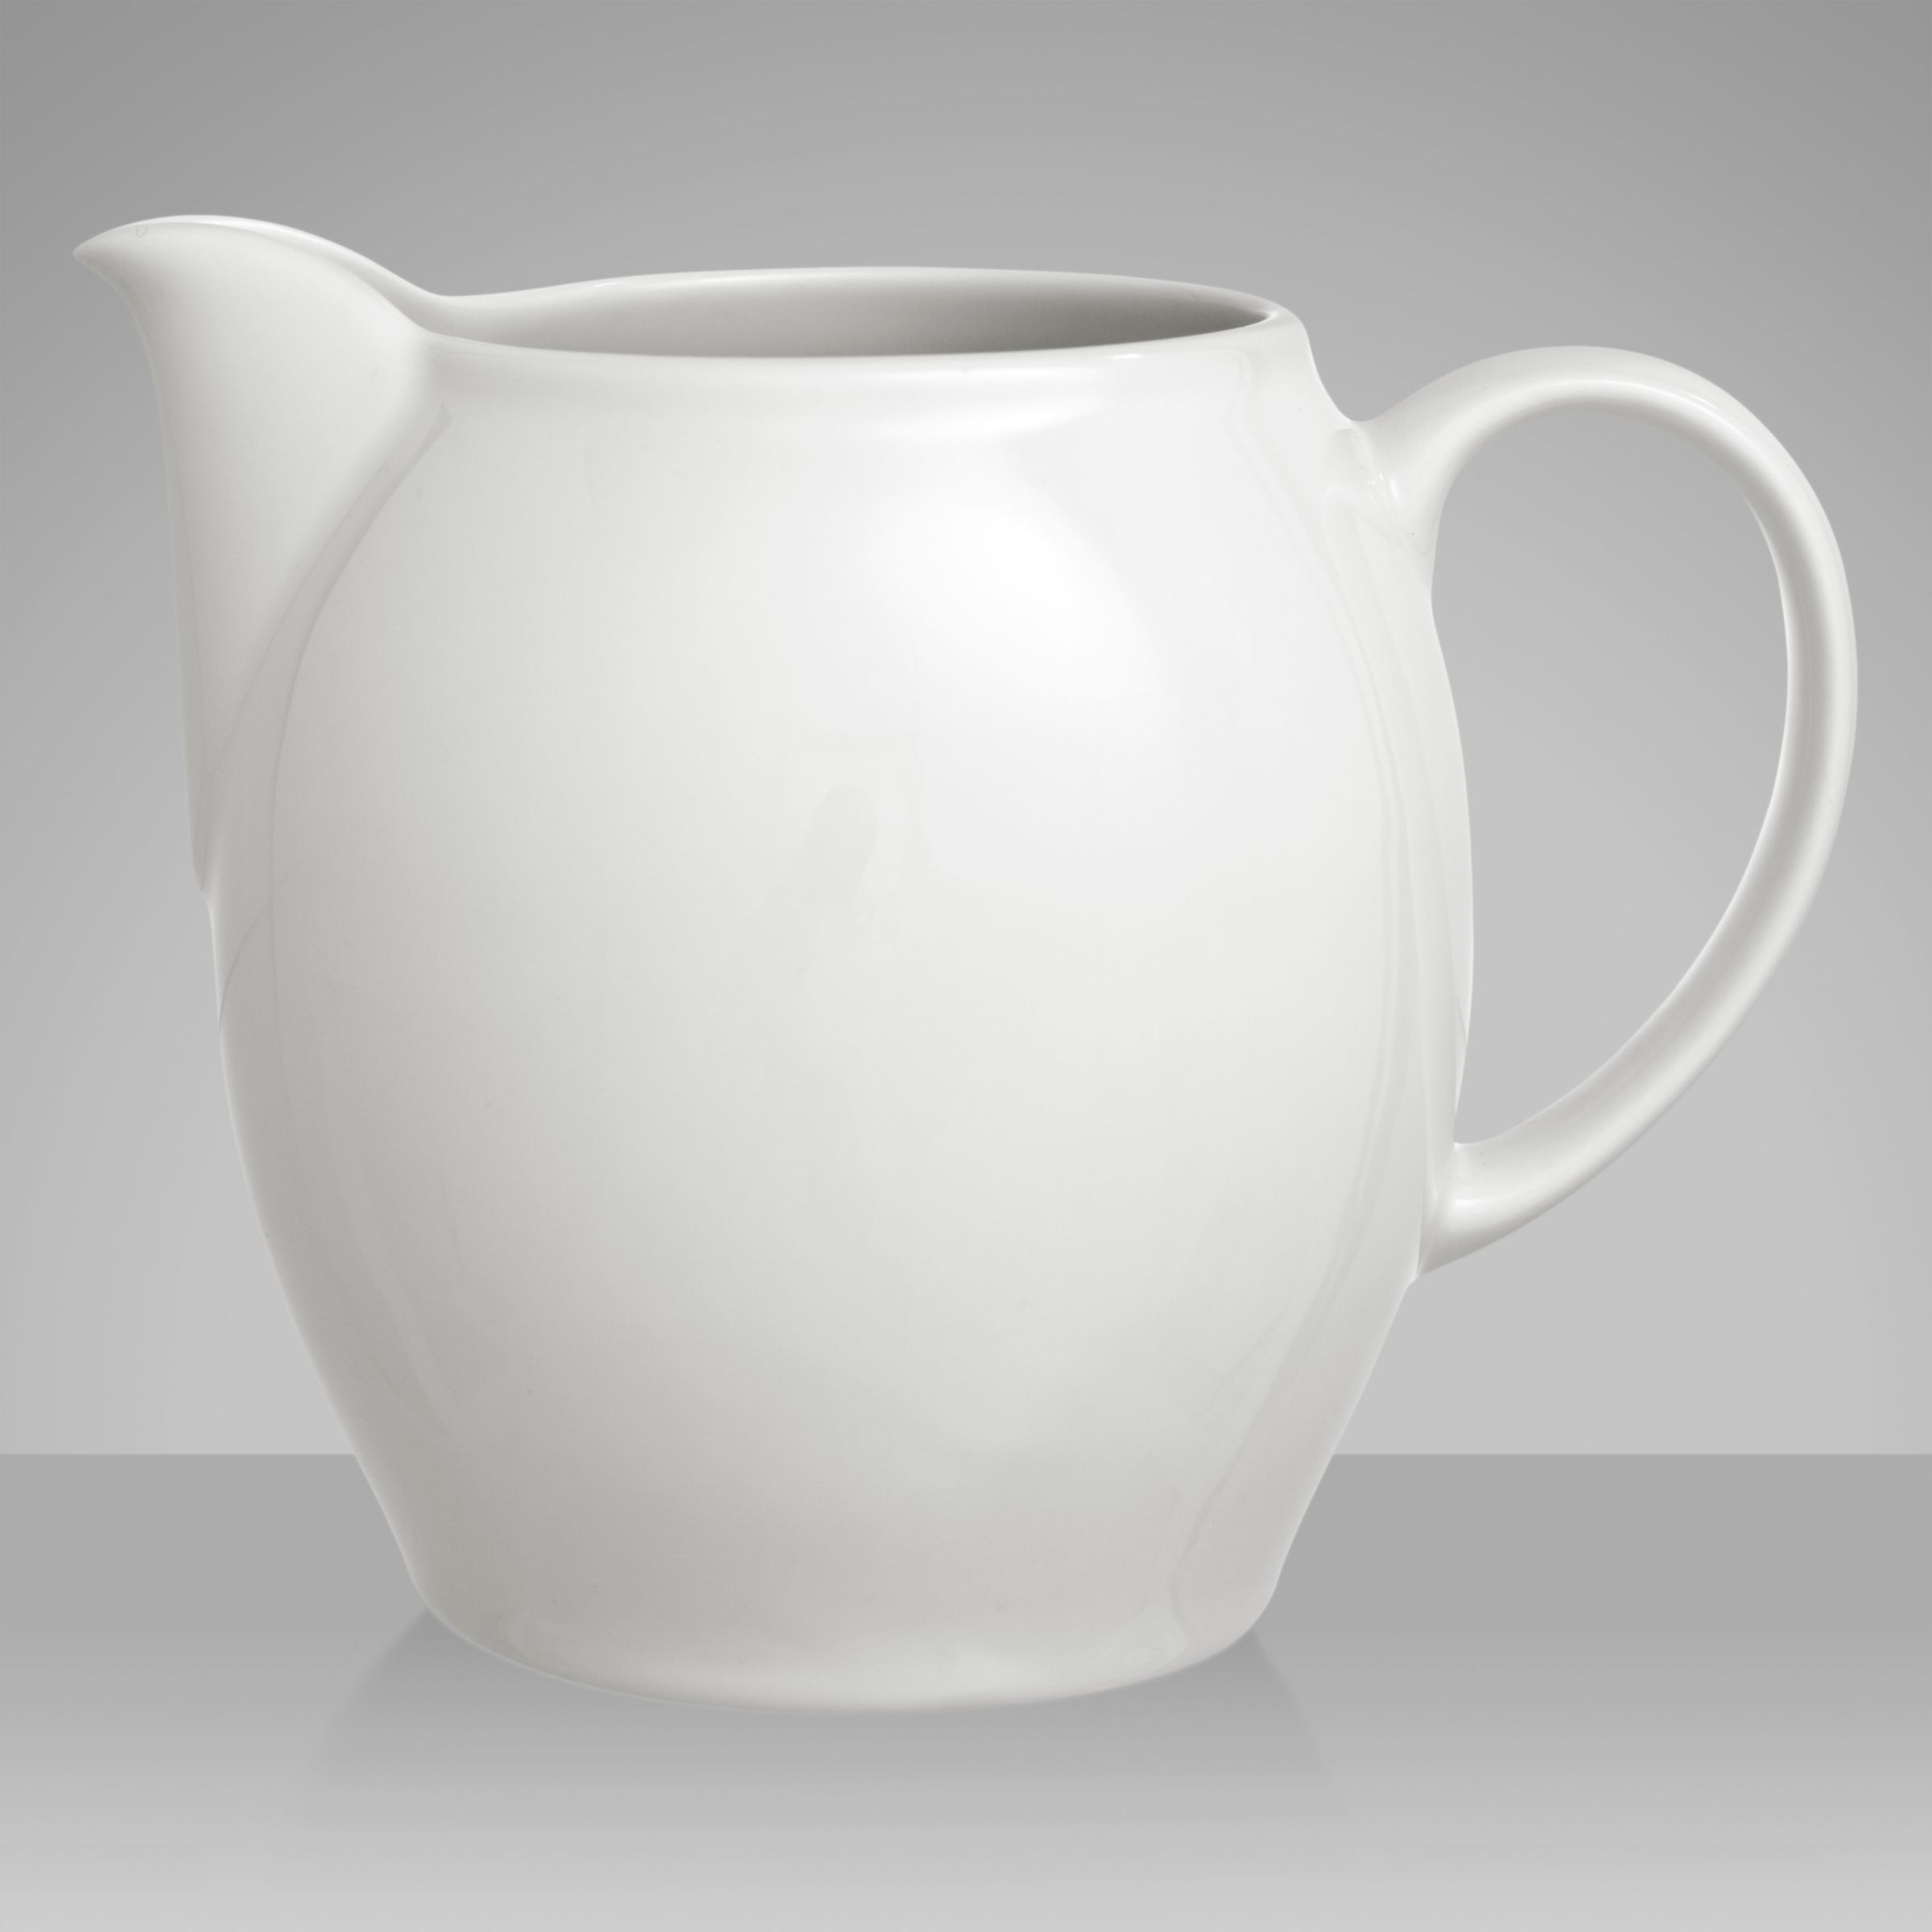 Denby White Small Jug, 0.4L